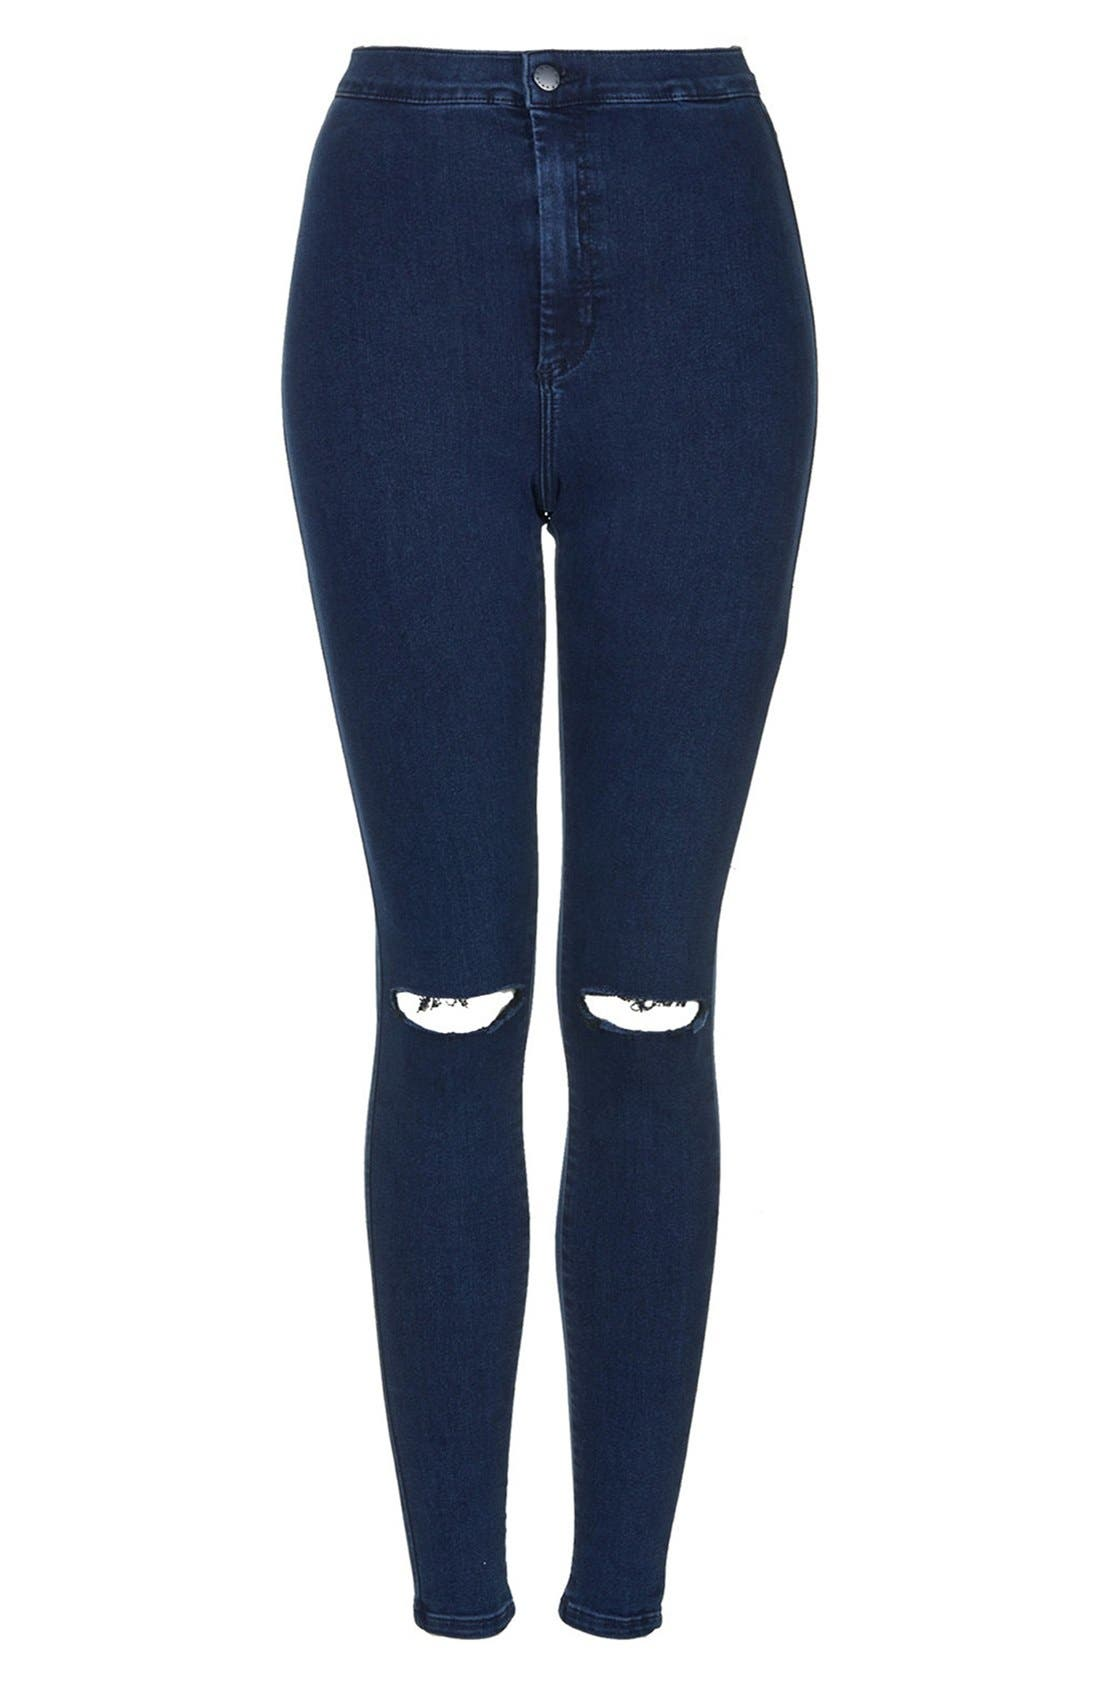 Alternate Image 3  - Topshop Moto 'Joni' Ripped High Rise Skinny Jeans (Blue) (Petite)